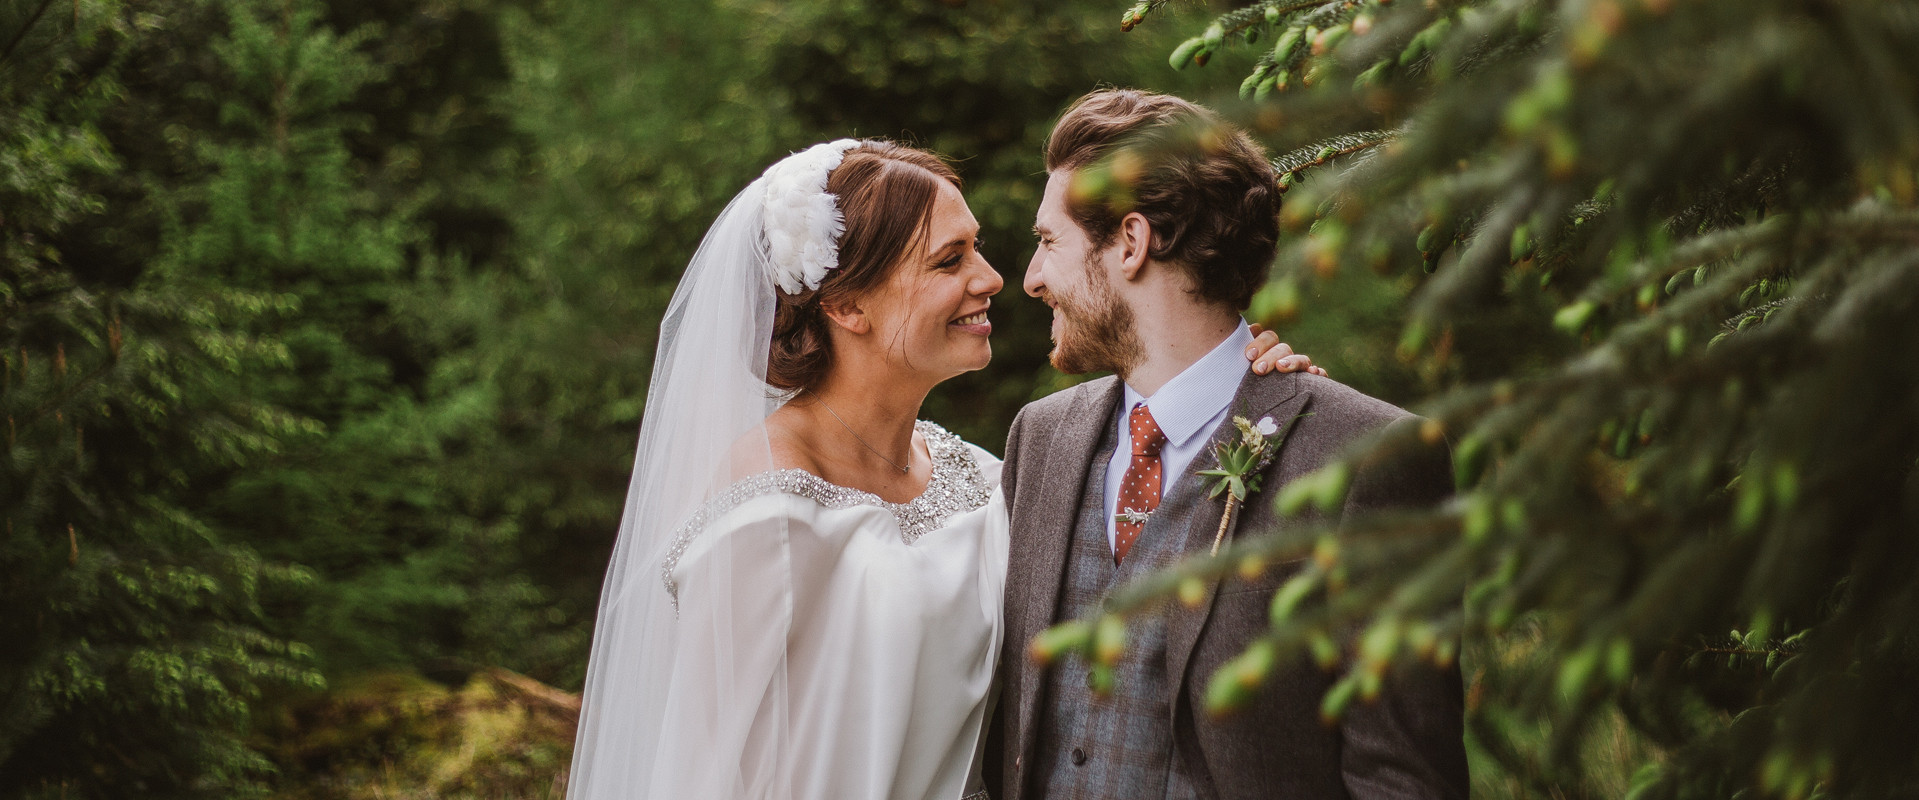 Relaxed photography for your Lancashire wedding.